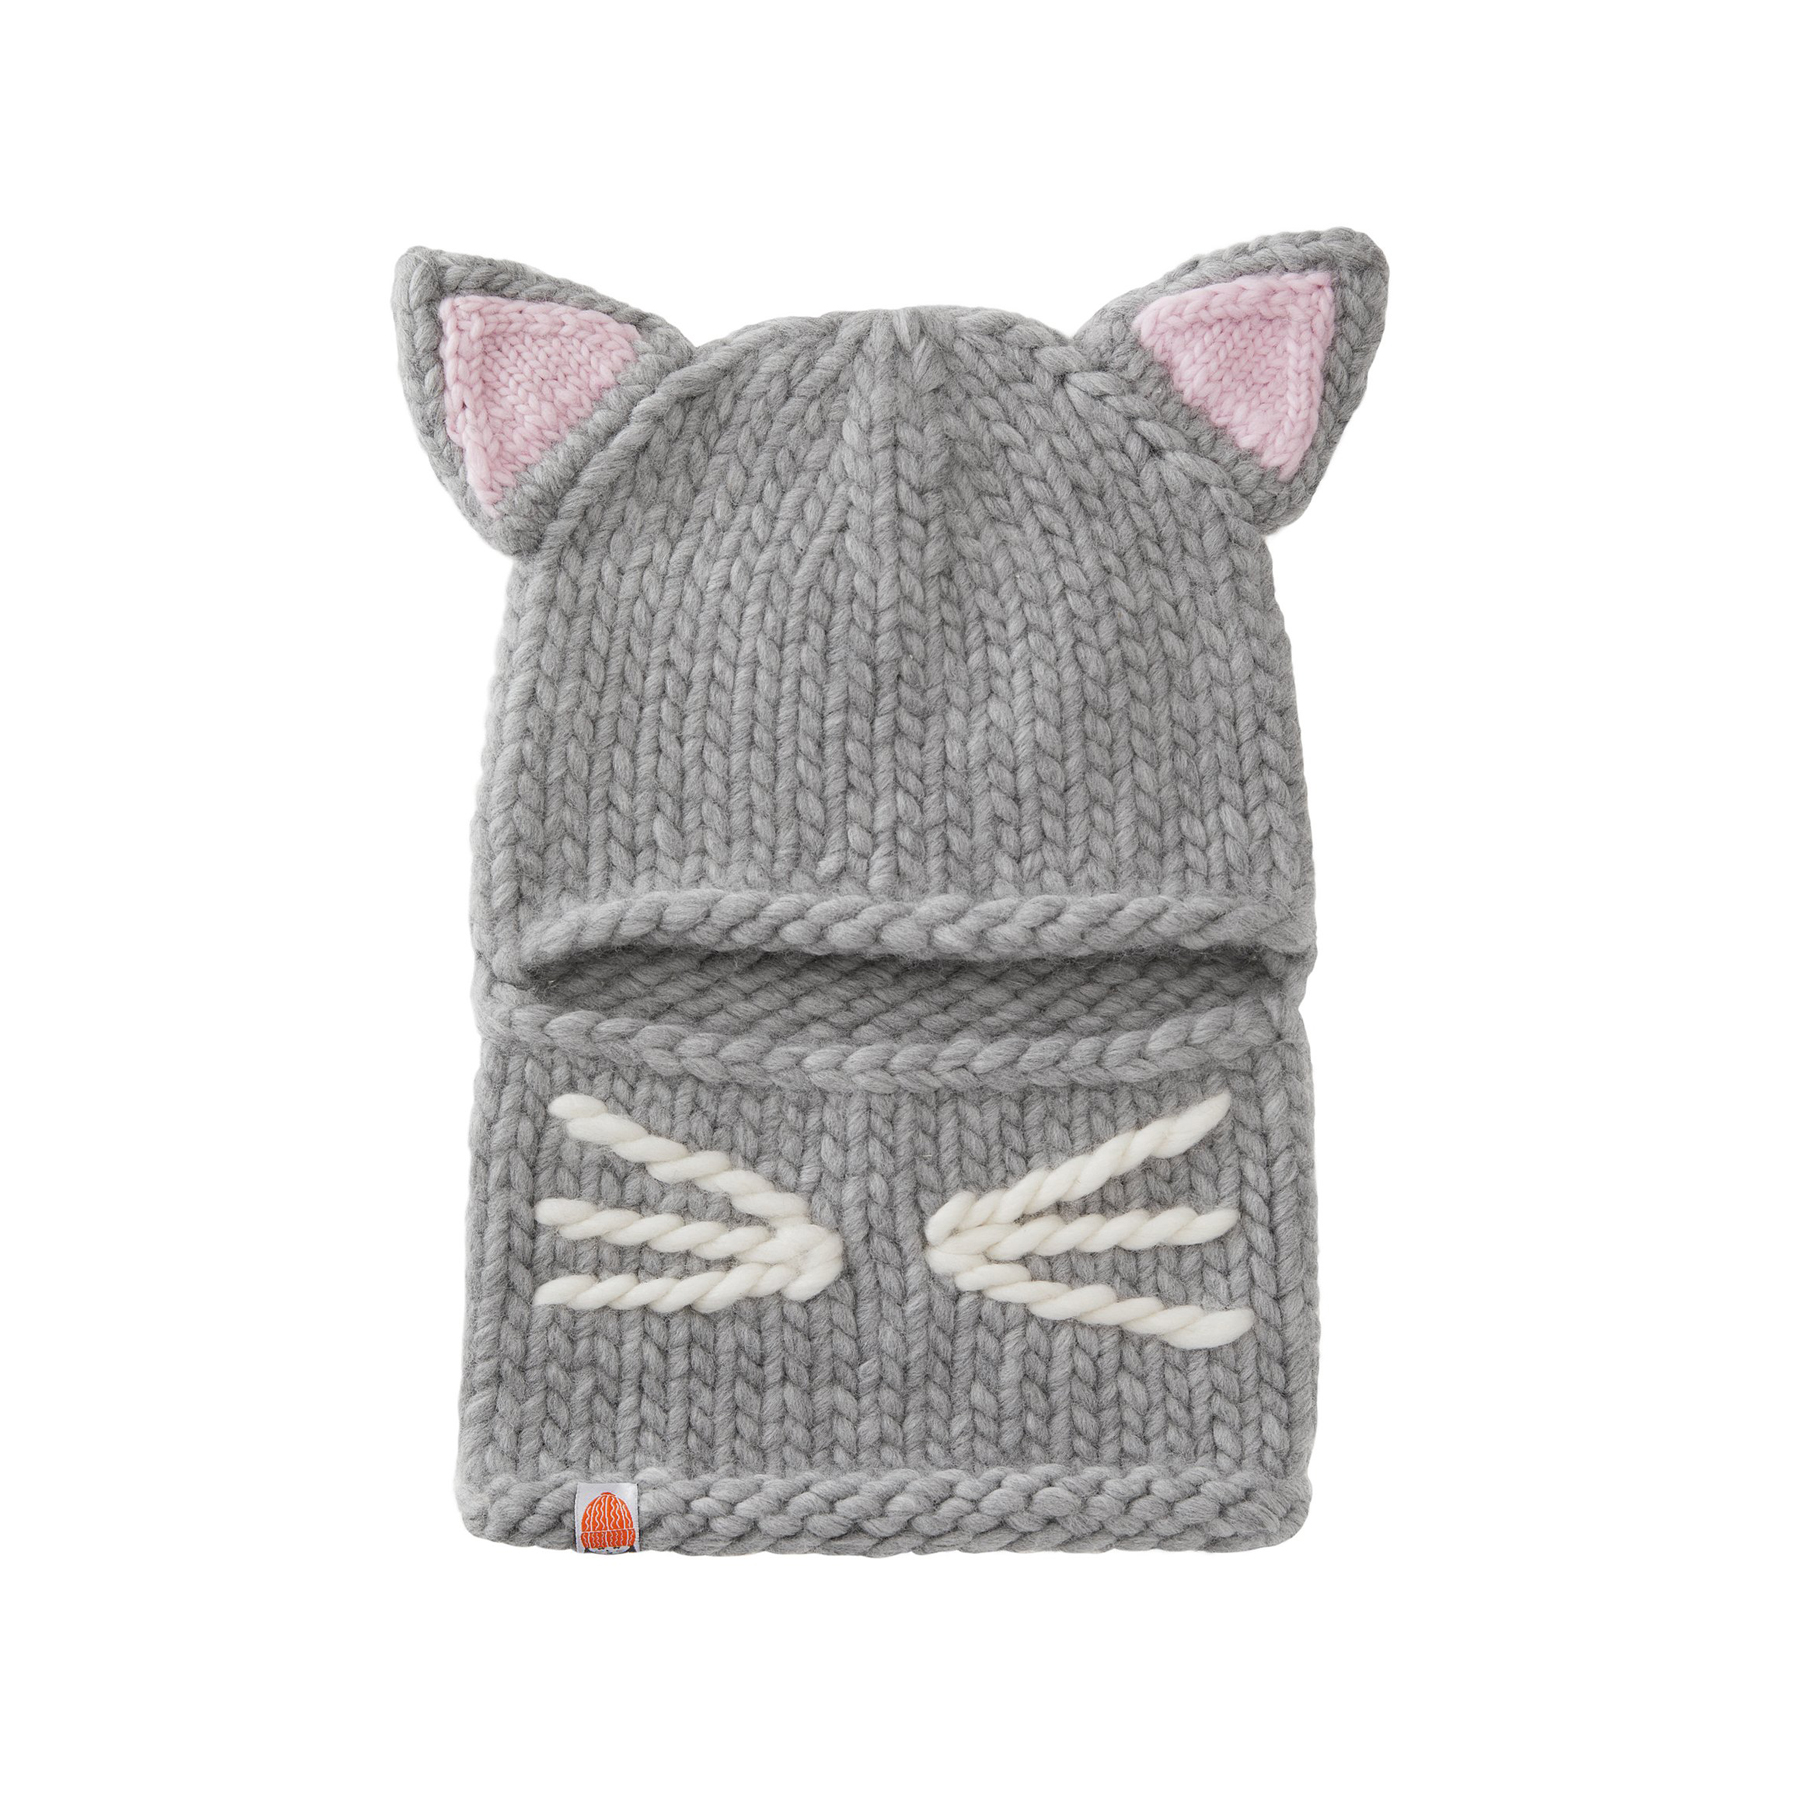 Cool gifts for kids - Sh*t That I Knit The Kitten Balaklava